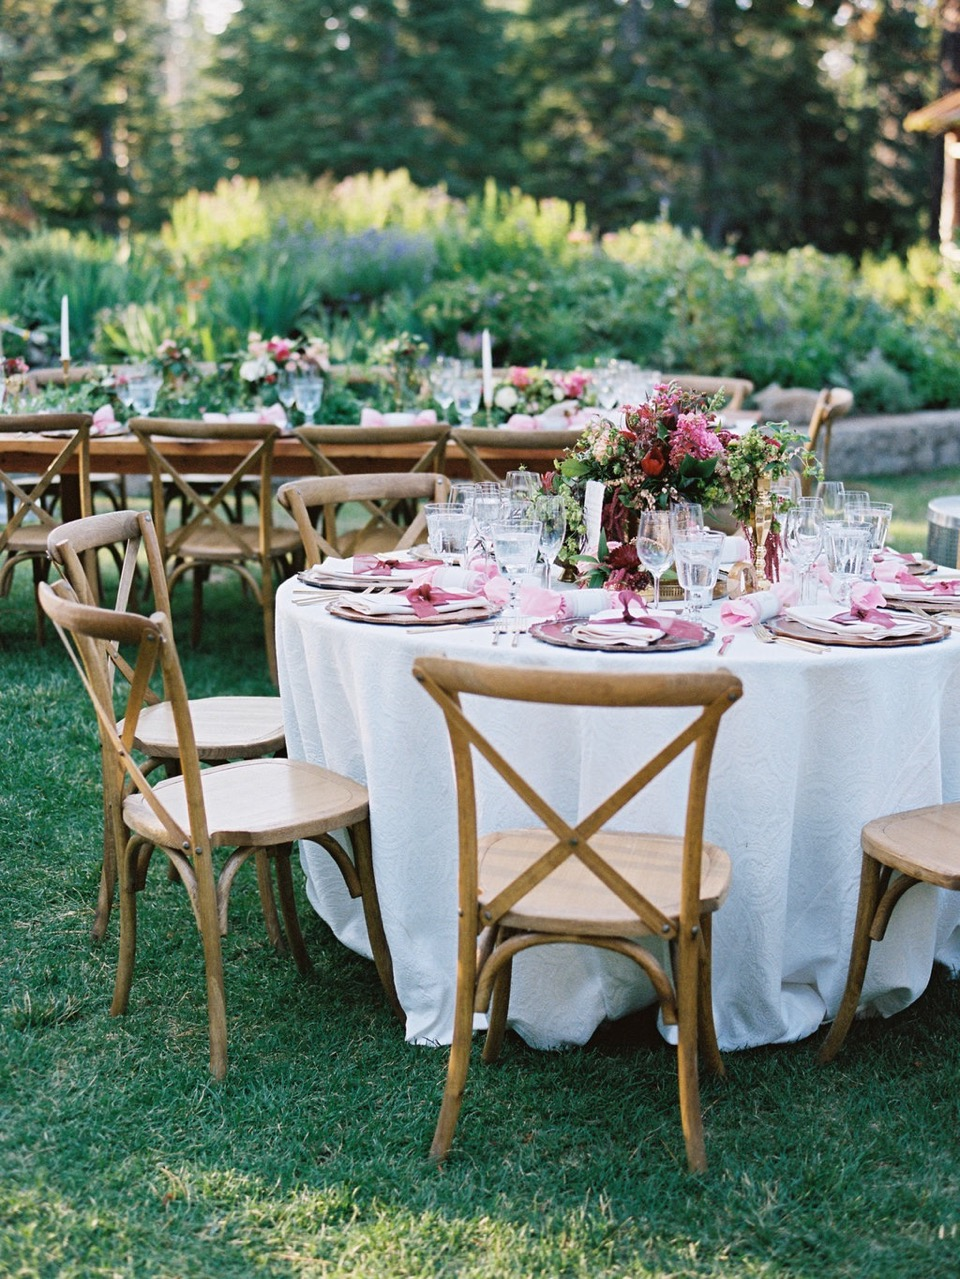 The Best La Tavola Tables by A Savvy Lifestyle [Elive Events | Ryan Ray Photo | B & B Flower Designs]